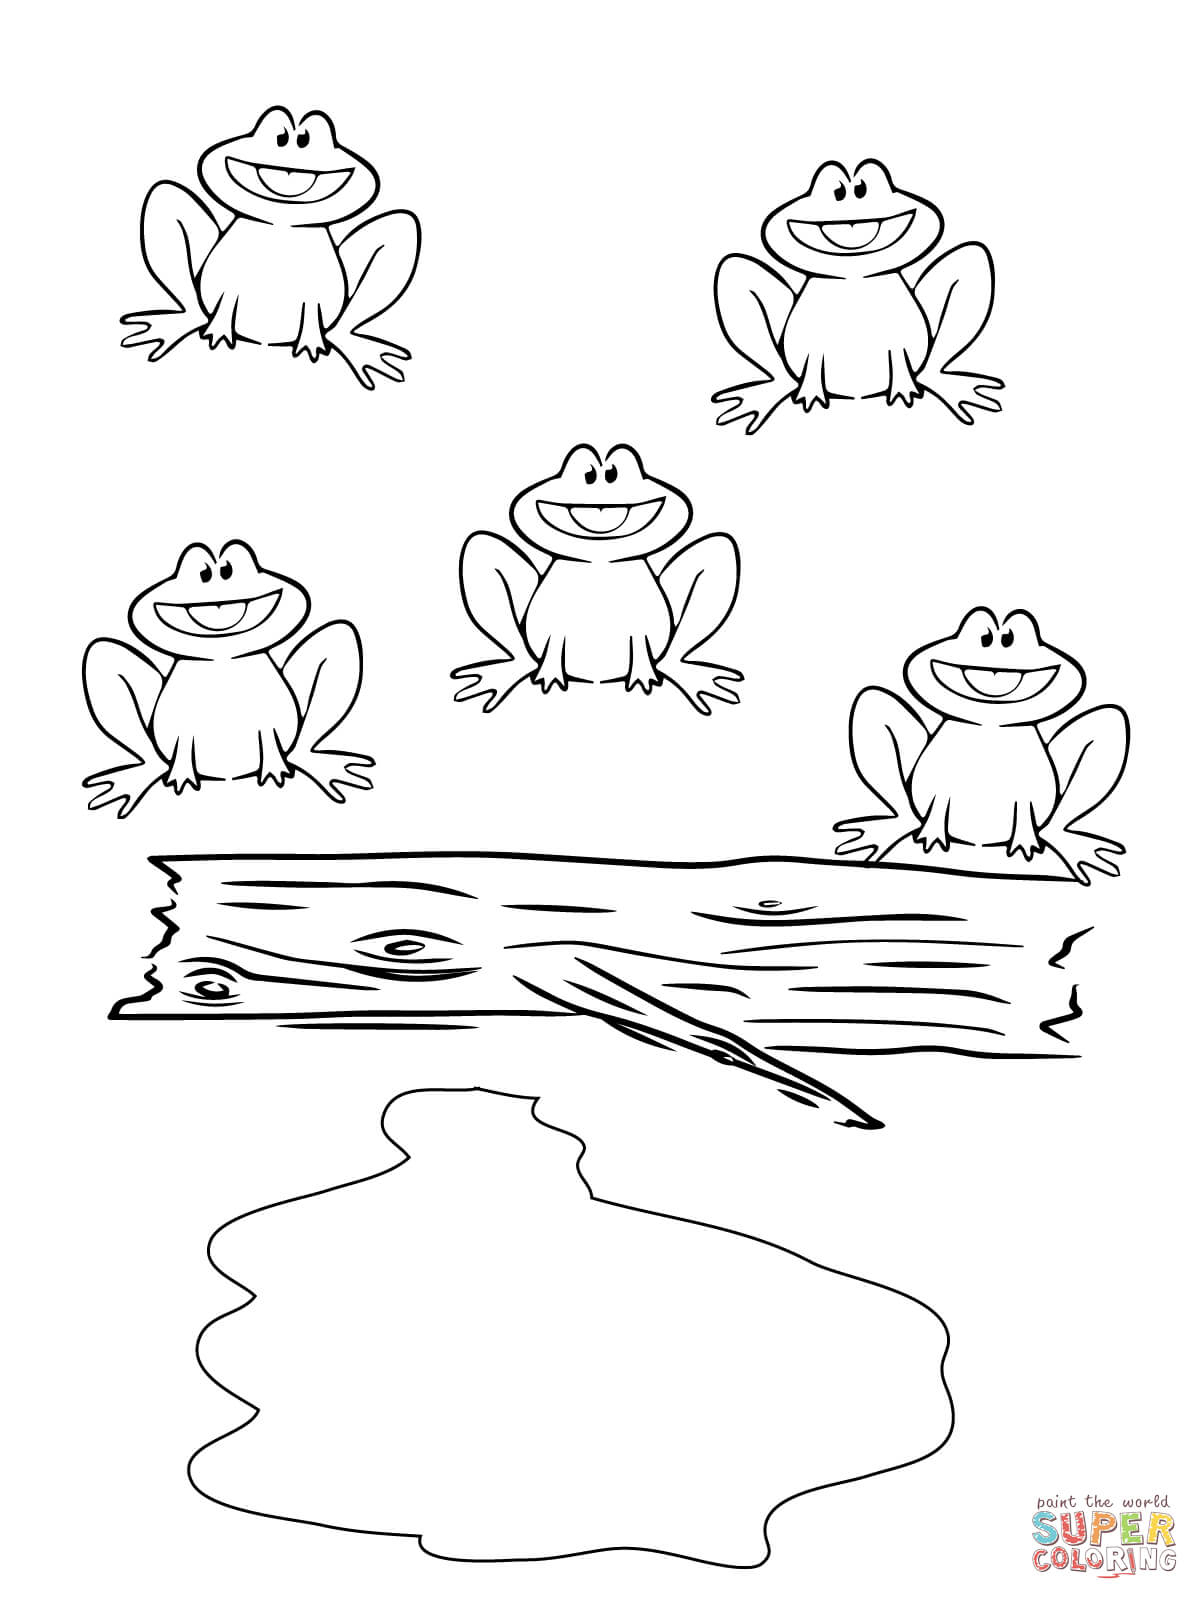 Five Little Speckled Frogs Coloring Page | Free Printable Coloring Pages - Printable Frog Puzzle